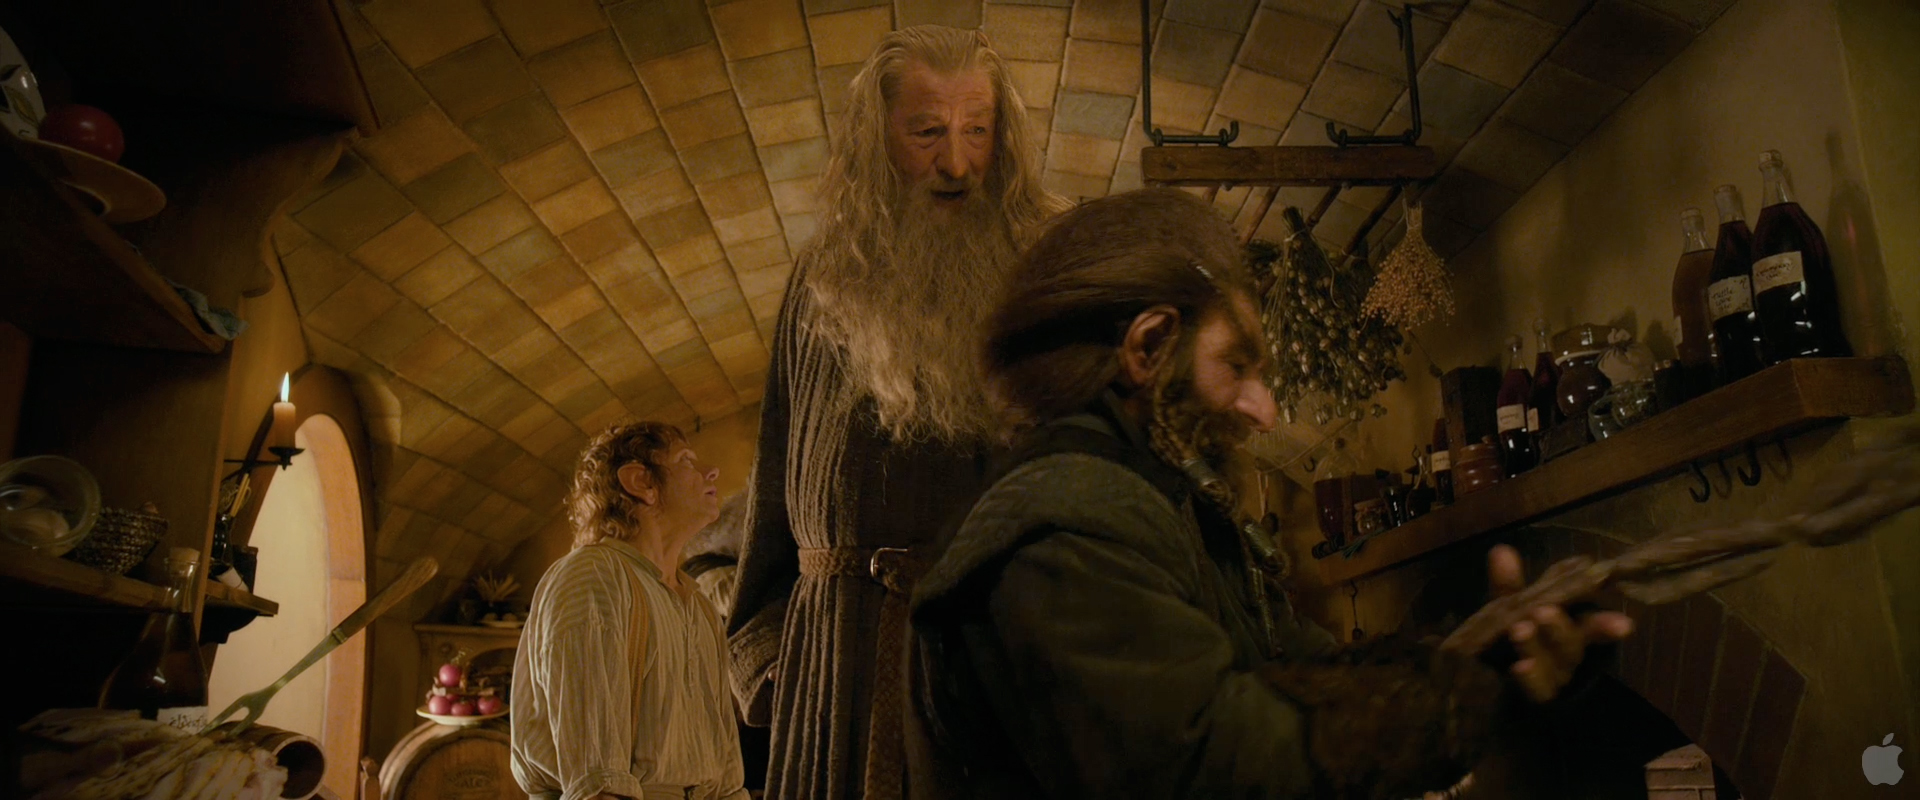 how bilbo in the hobbit influences How does the treasure influence the characters in the film the only character who is influenced by the treasure in a good way is the hobbit and burglar bilbo.